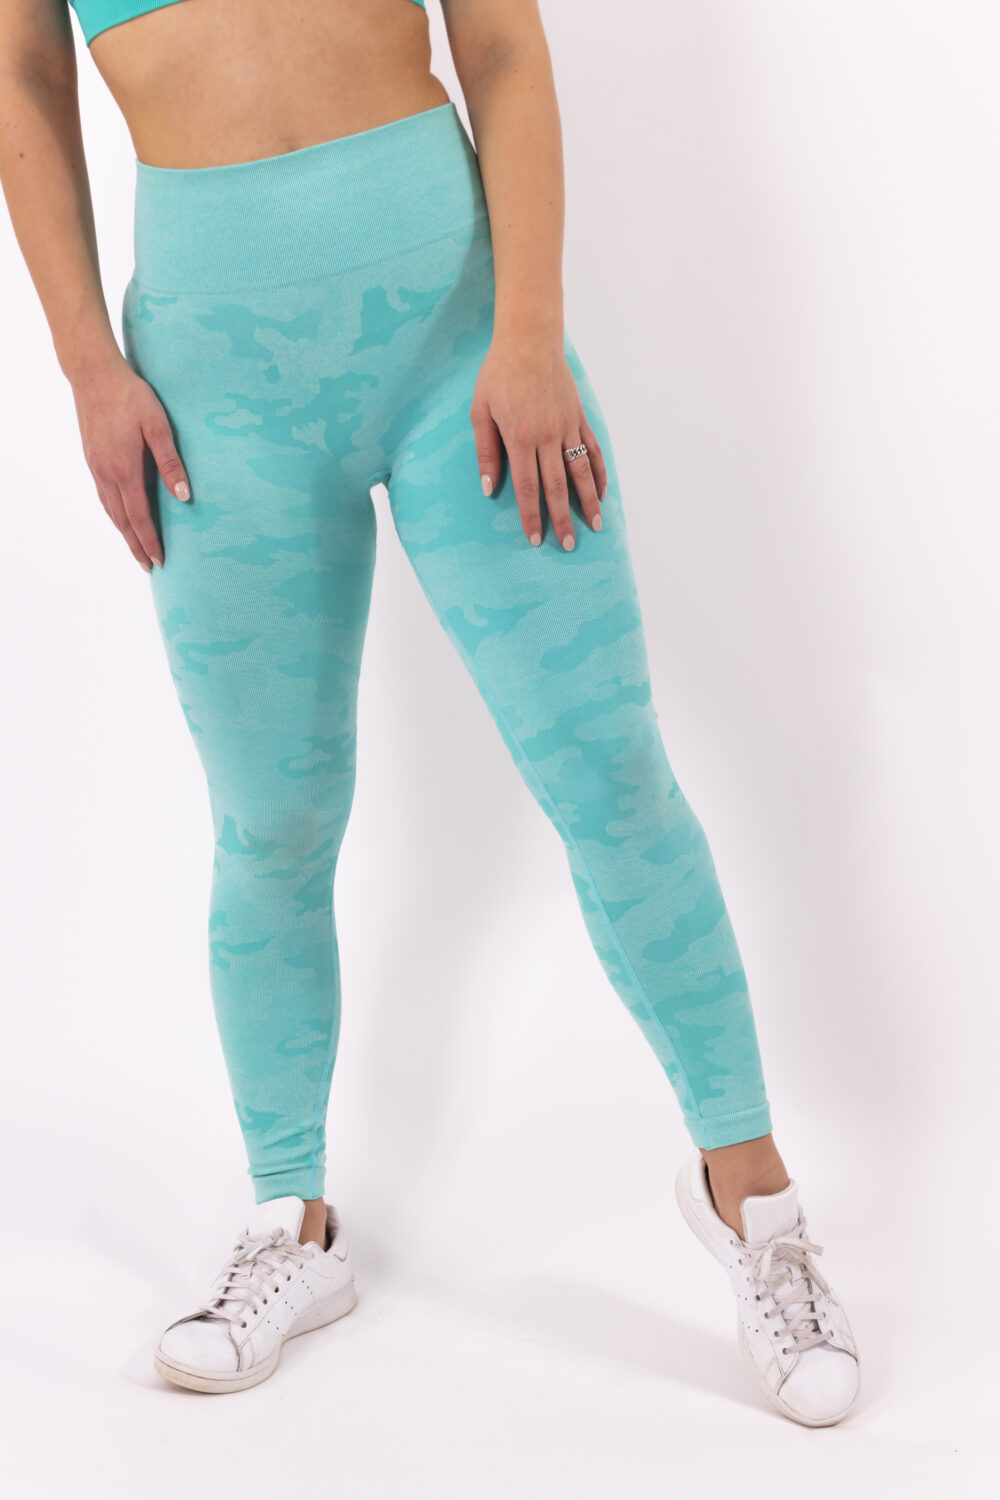 Turquoise camp sportlegging woman nutrition